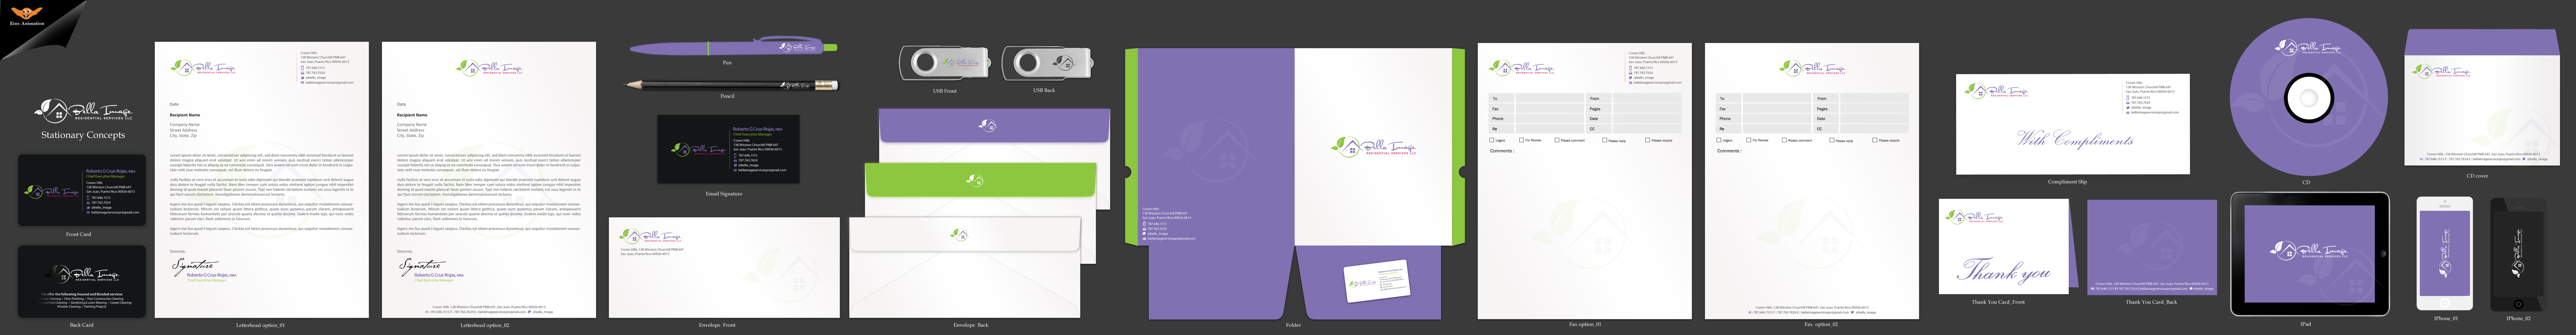 Business Cards and Stationery for residential cleaning services company - Cleaning